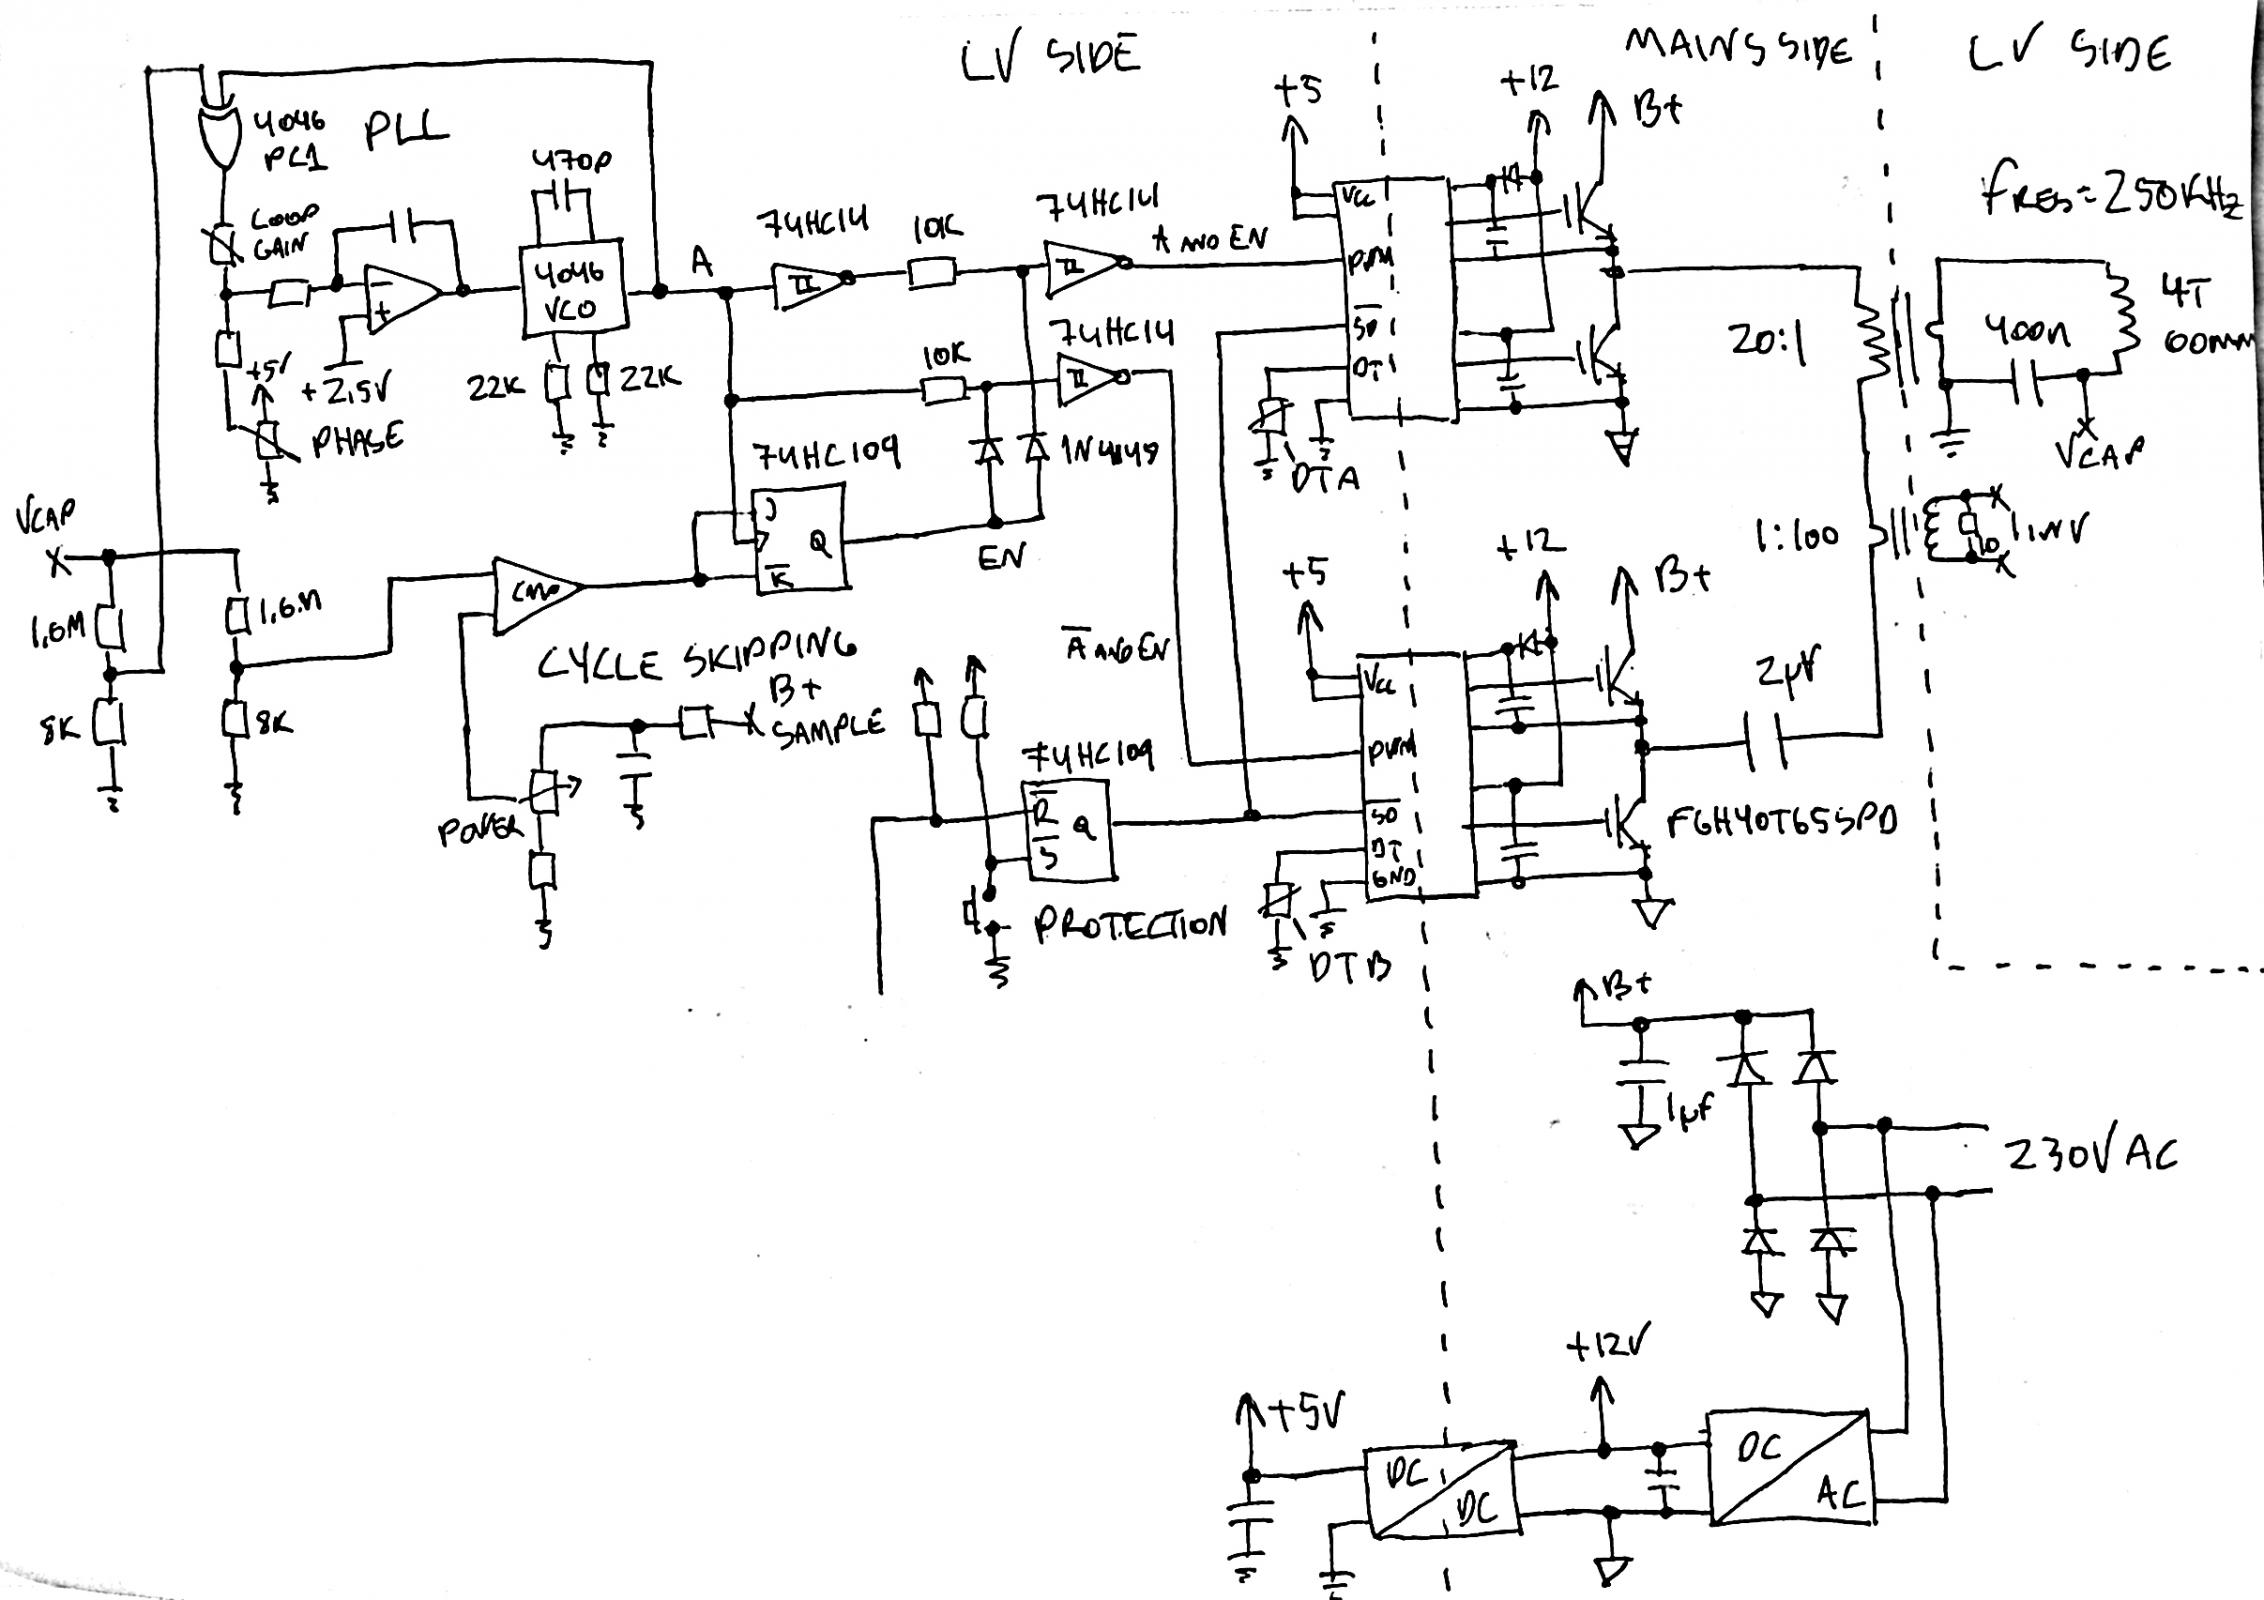 Induction Coil Wiring Diagram | Wiring Liry on 1997 sportster wiring diagram, dyna s ignition wiring diagram, harley speedometer wiring diagram, dyna 2000i ignition wiring diagram, harley radio wiring diagram, harley handlebar wiring diagram, 2004 harley davidson wiring diagram, 2003 harley davidson speedometer, 2003 harley davidson service manual, harley ignition module wiring diagram, harley-davidson coil wiring diagram, simple harley wiring diagram, simple motorcycle wiring diagram, 2003 harley davidson rear suspension, 2003 harley davidson system, harley sportster wiring diagram, 2003 harley davidson engine, 2002 harley davidson wiring diagram, 2005 harley davidson wiring diagram, harley wiring harness diagram,